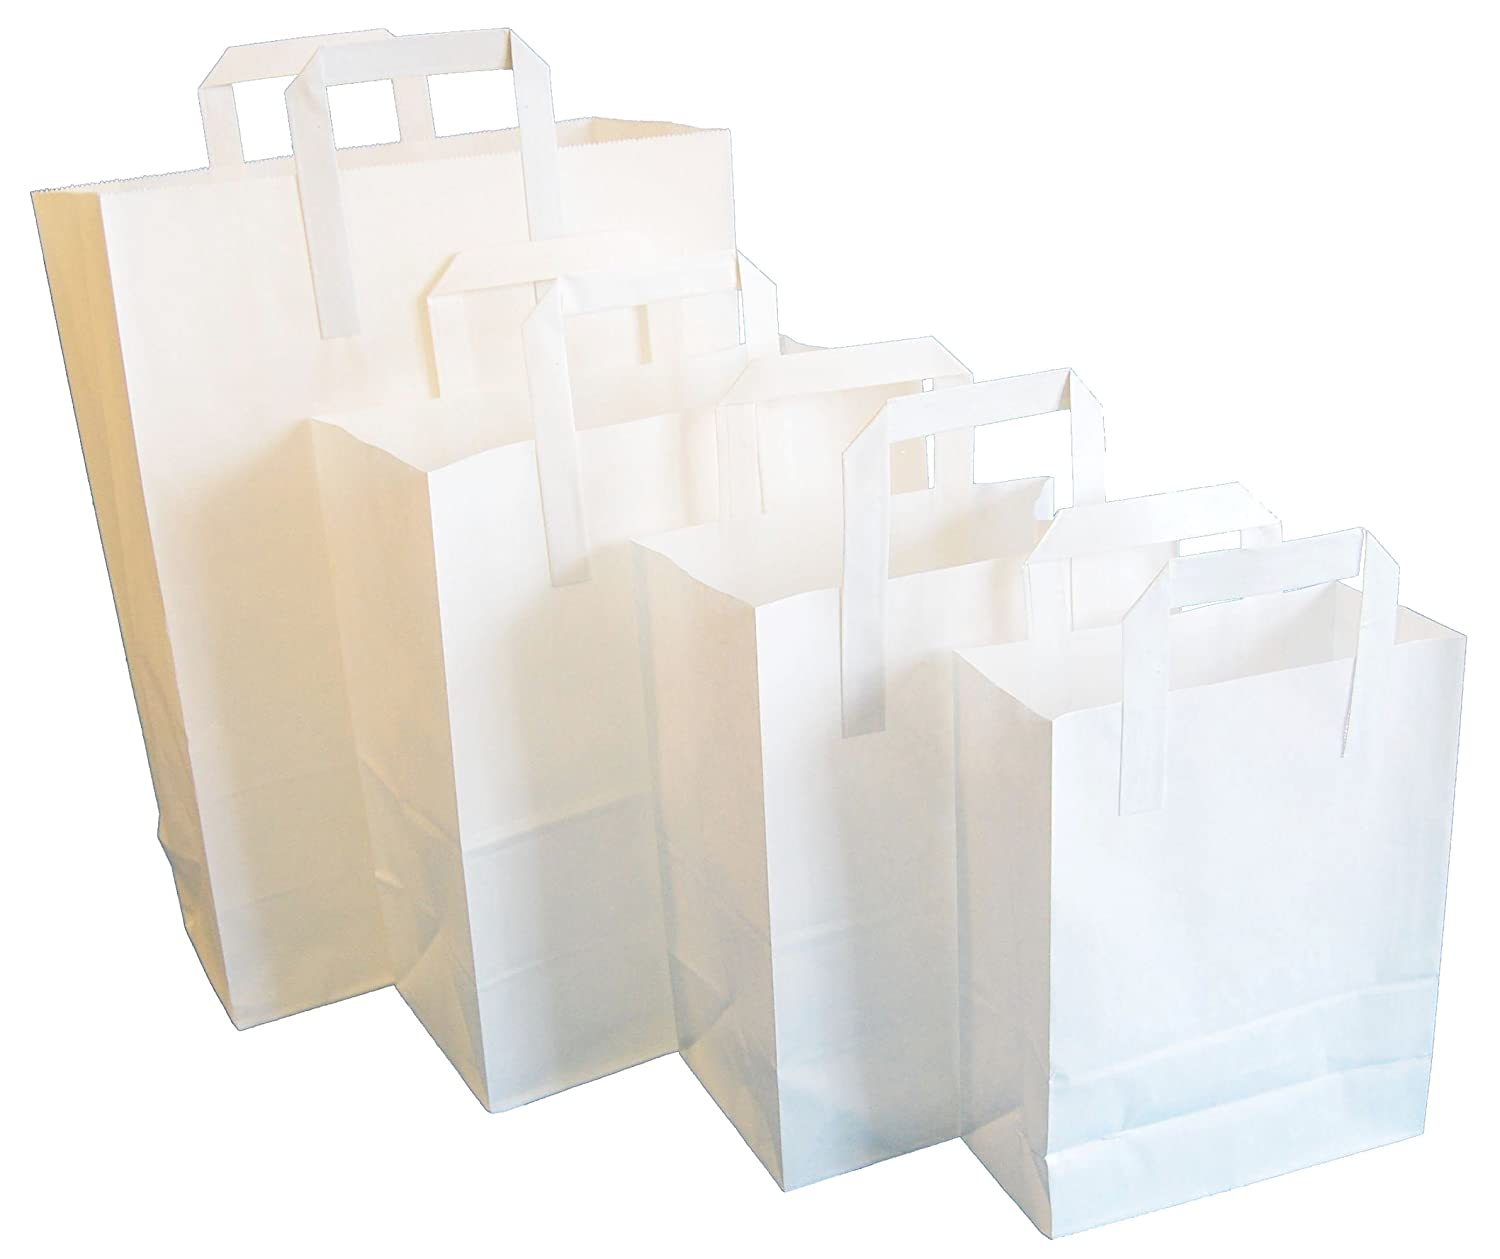 50 WHITE SMALL SOS TAKEAWAY PAPER CARRIER BAGS 180x220x76mm CHOOSE YOUR SIZE AND QUANTITY